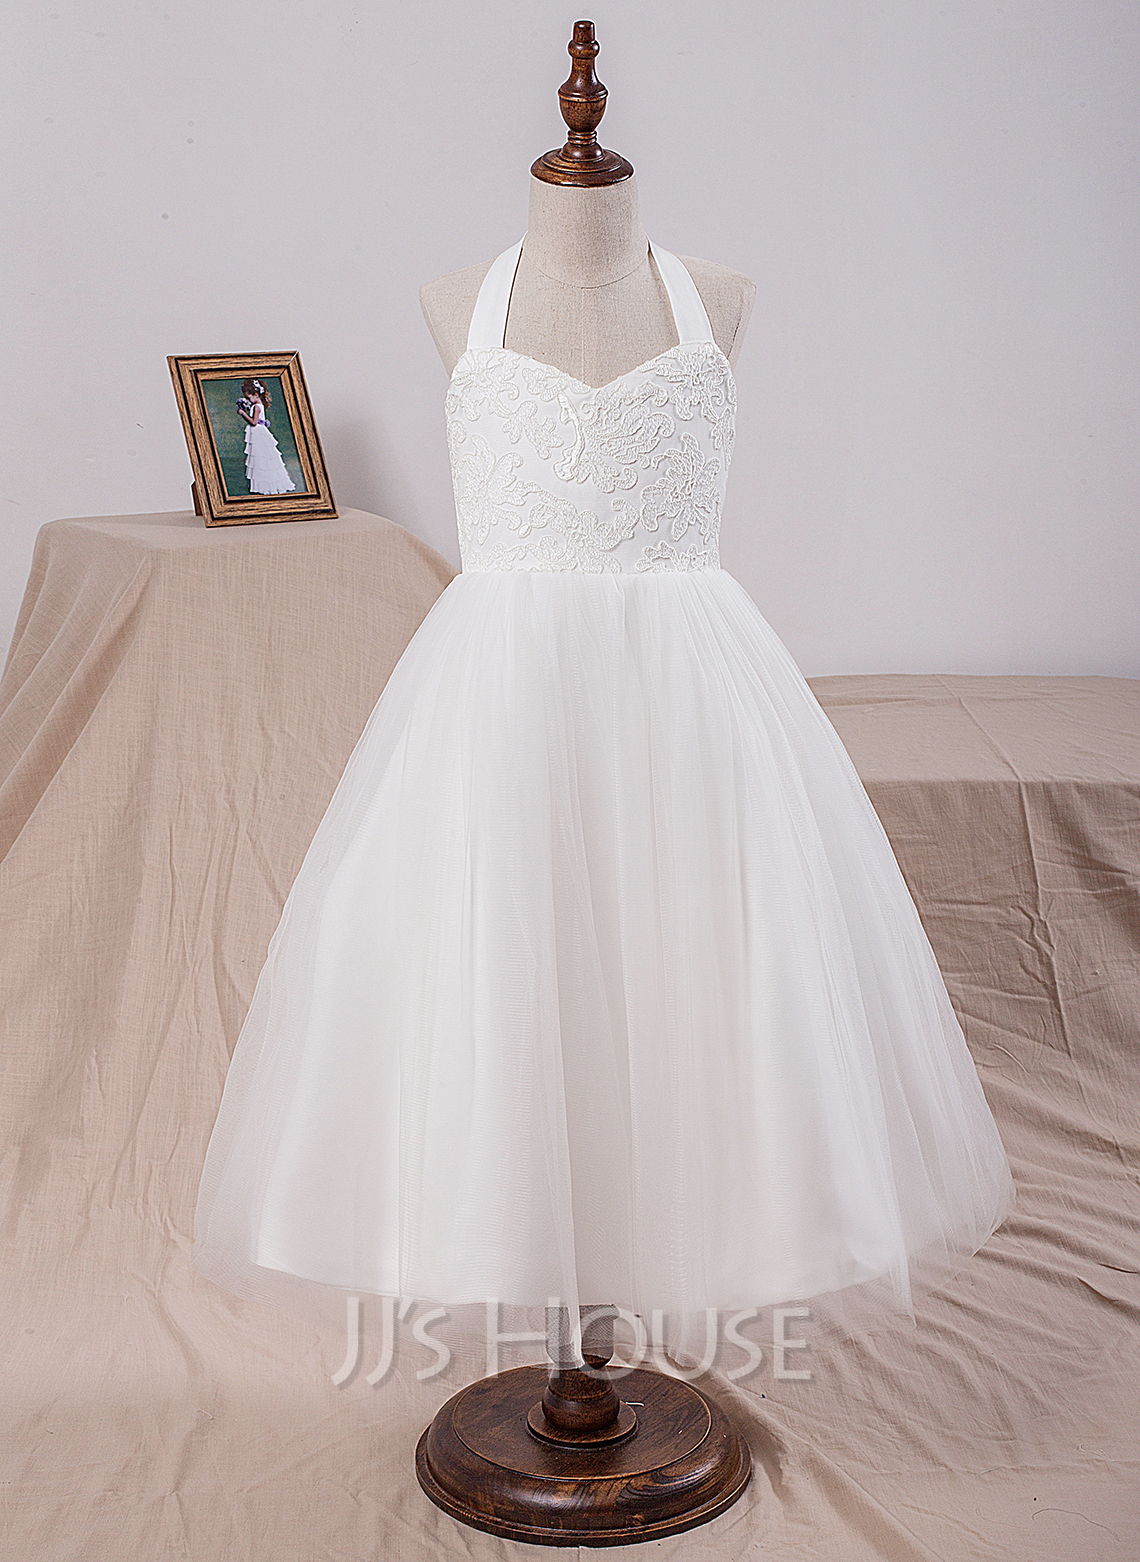 A-Line/Princess Tea-length Flower Girl Dress - Satin/Tulle/Lace Sleeveless Halter